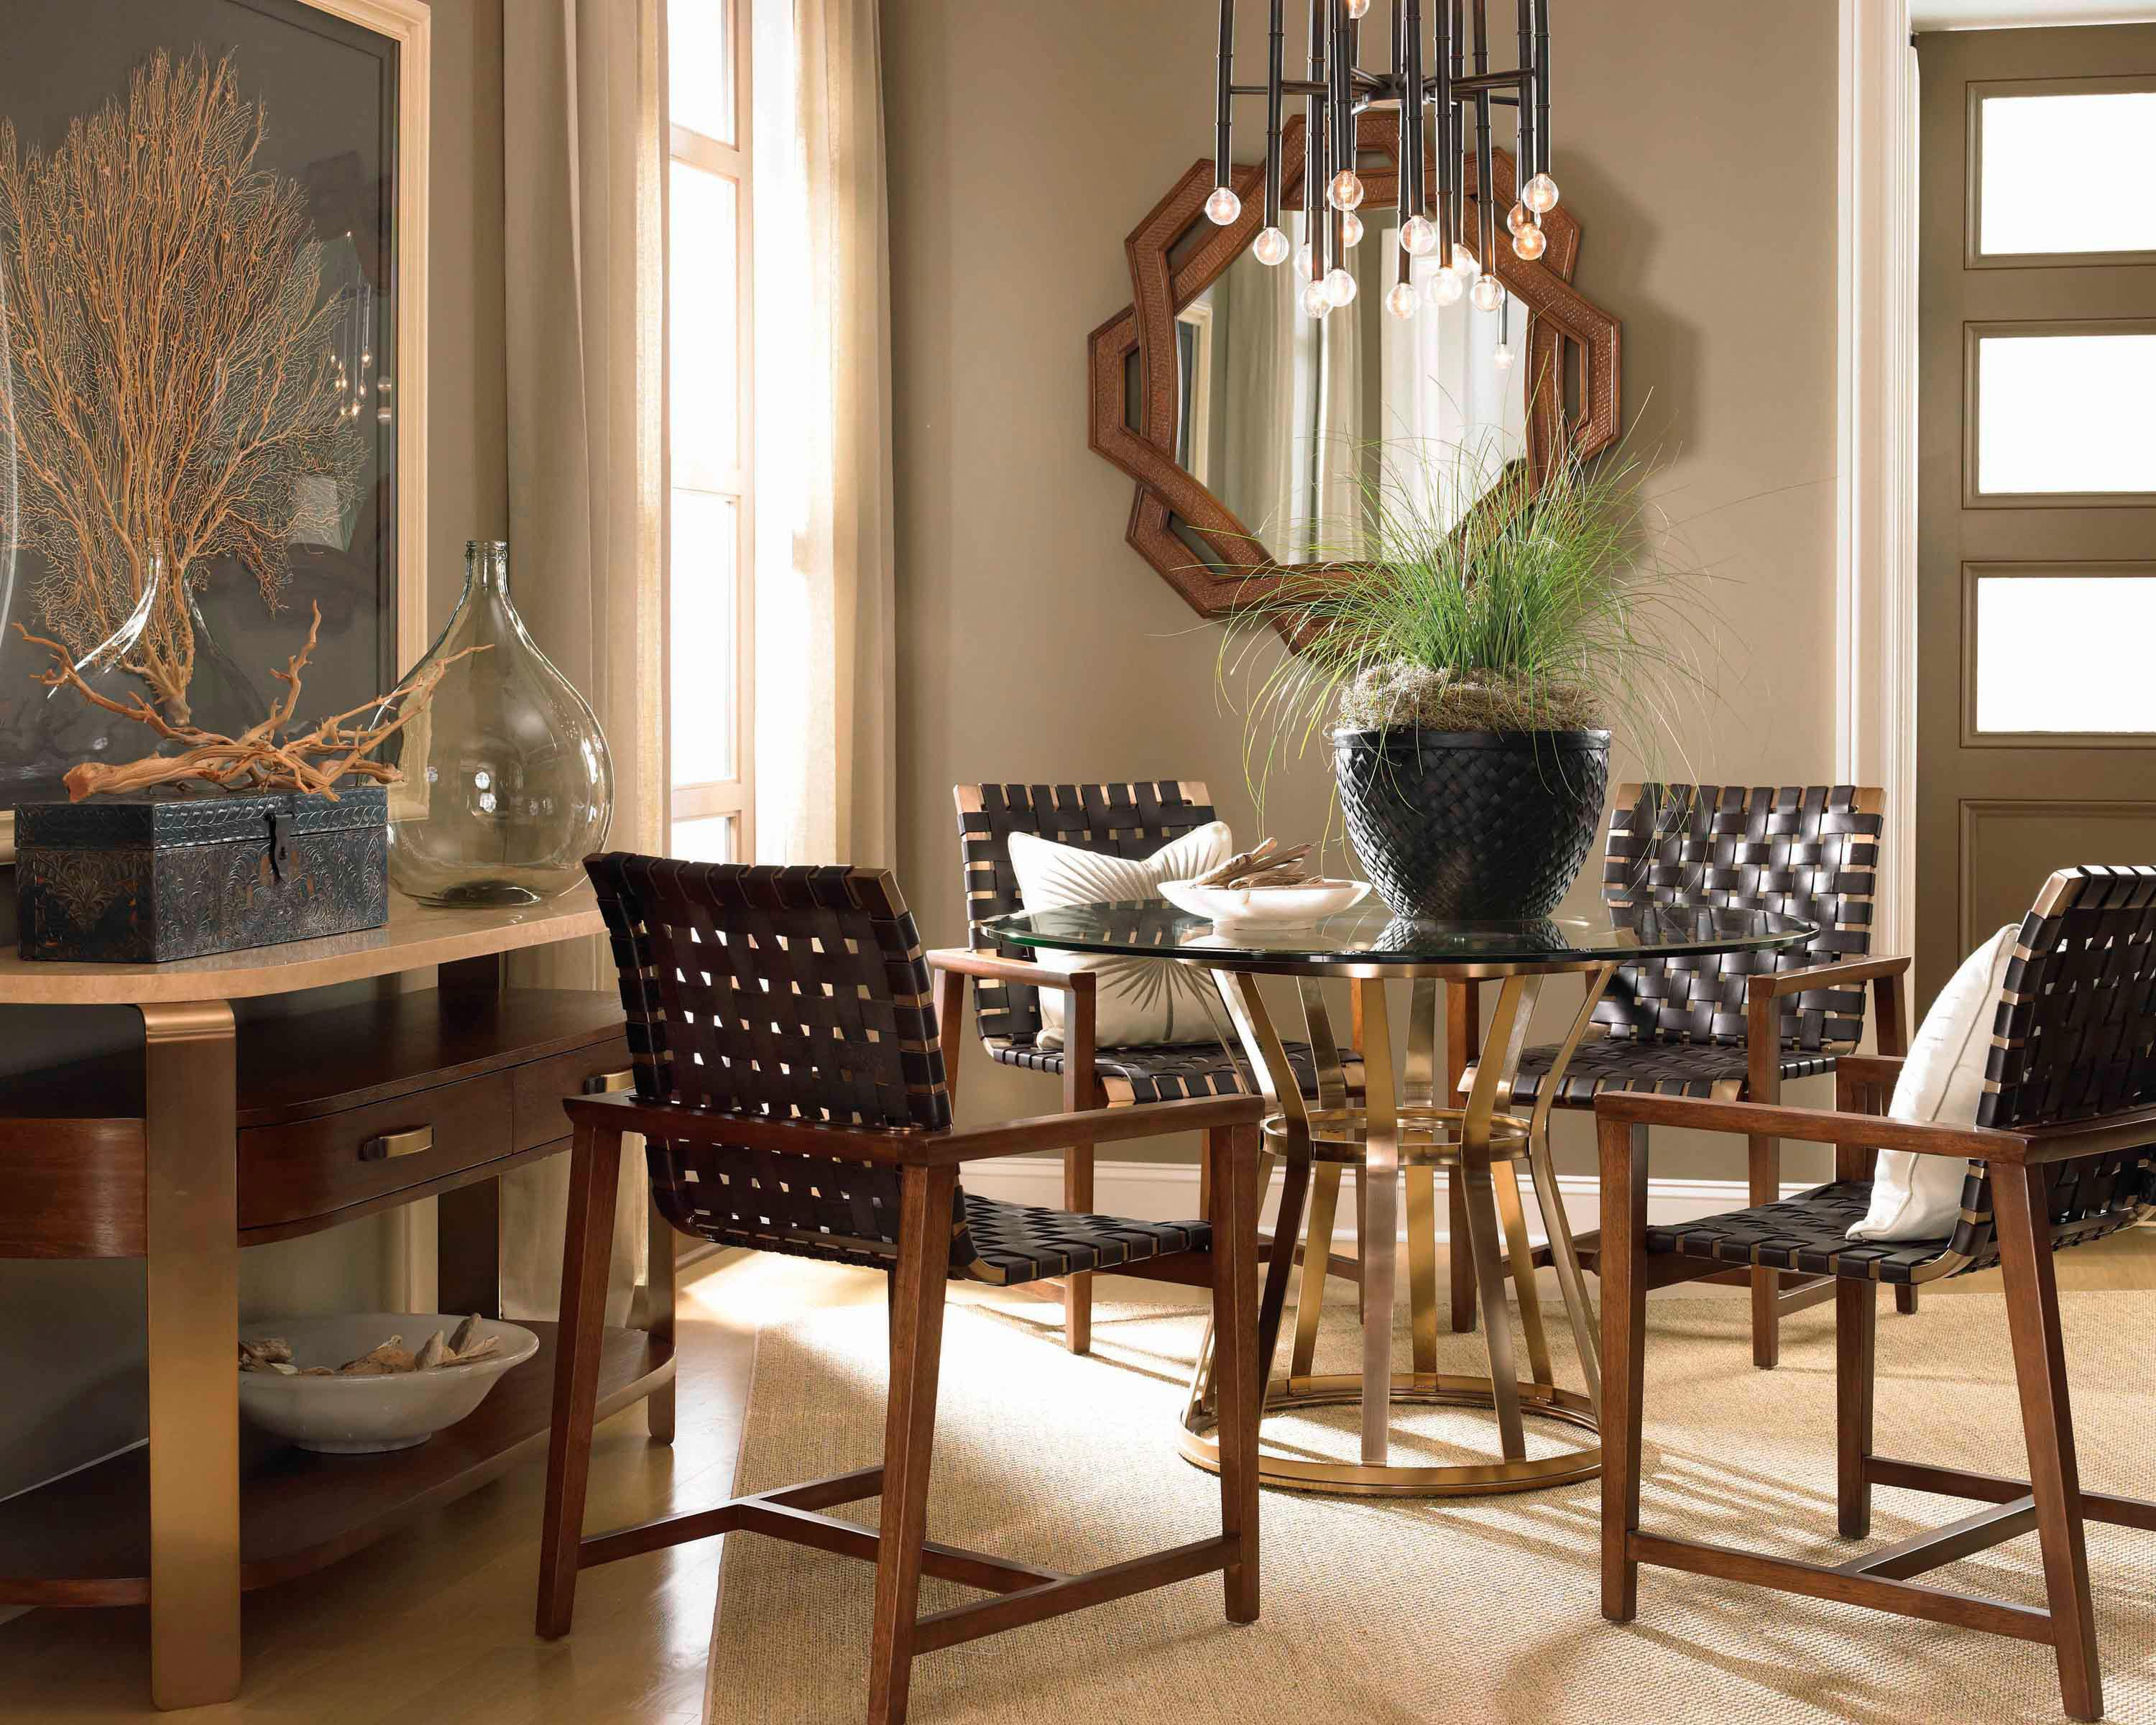 Drexel Renderings Voussoir Pedestal Dining Table W/ Glass Top   Sprintz  Furniture   Dining Tables Nashville, Franklin, And Greater Tennessee